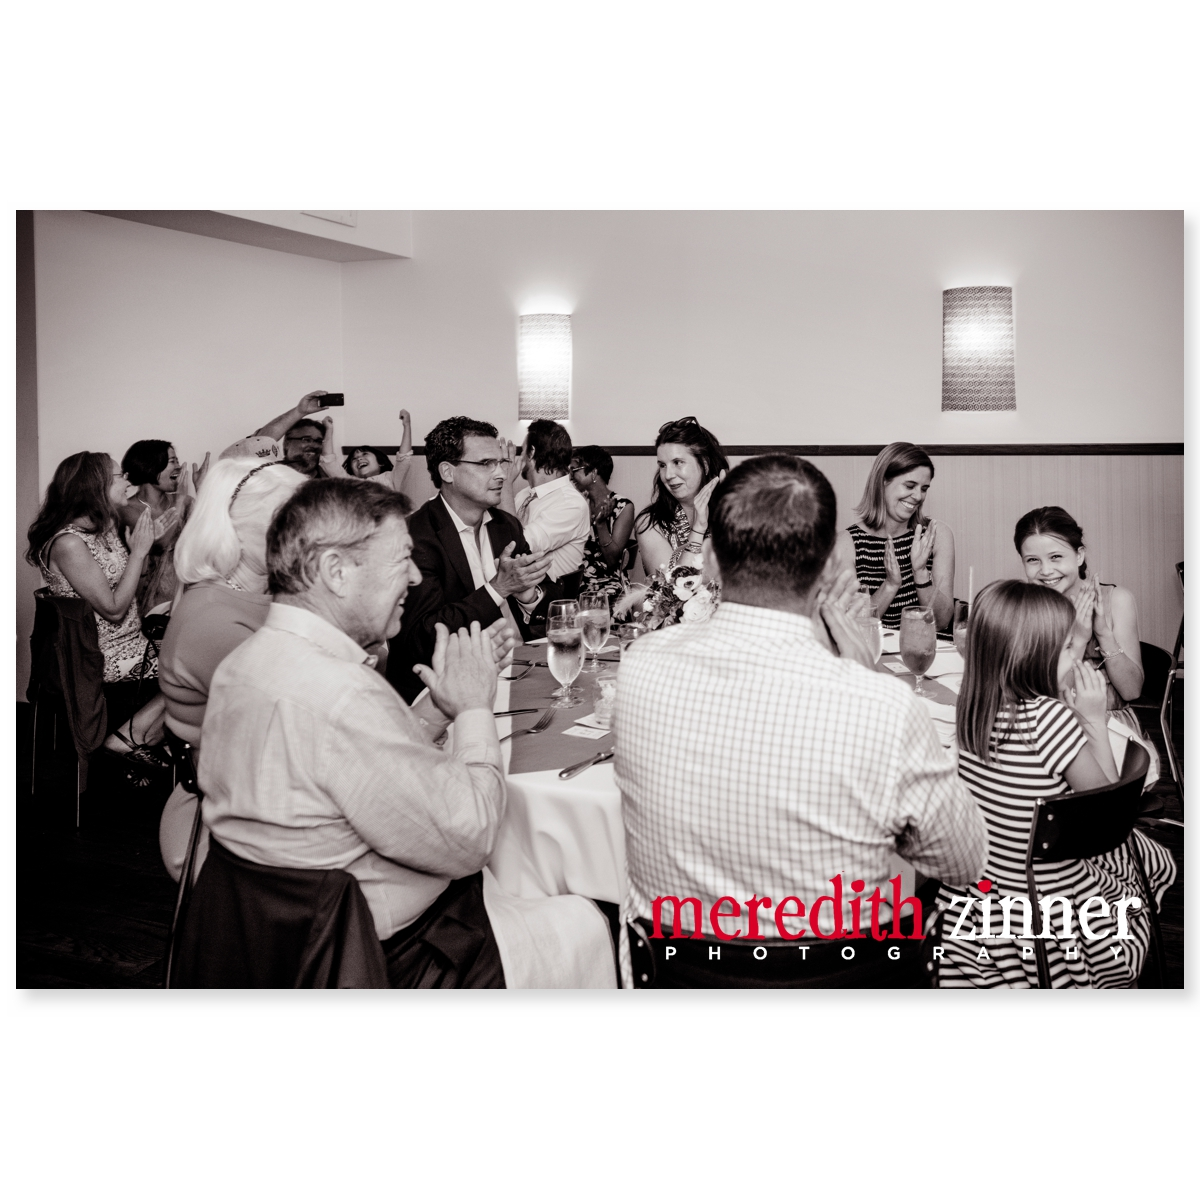 Meredith_Zinner_Photography_StilesCelebration_0184